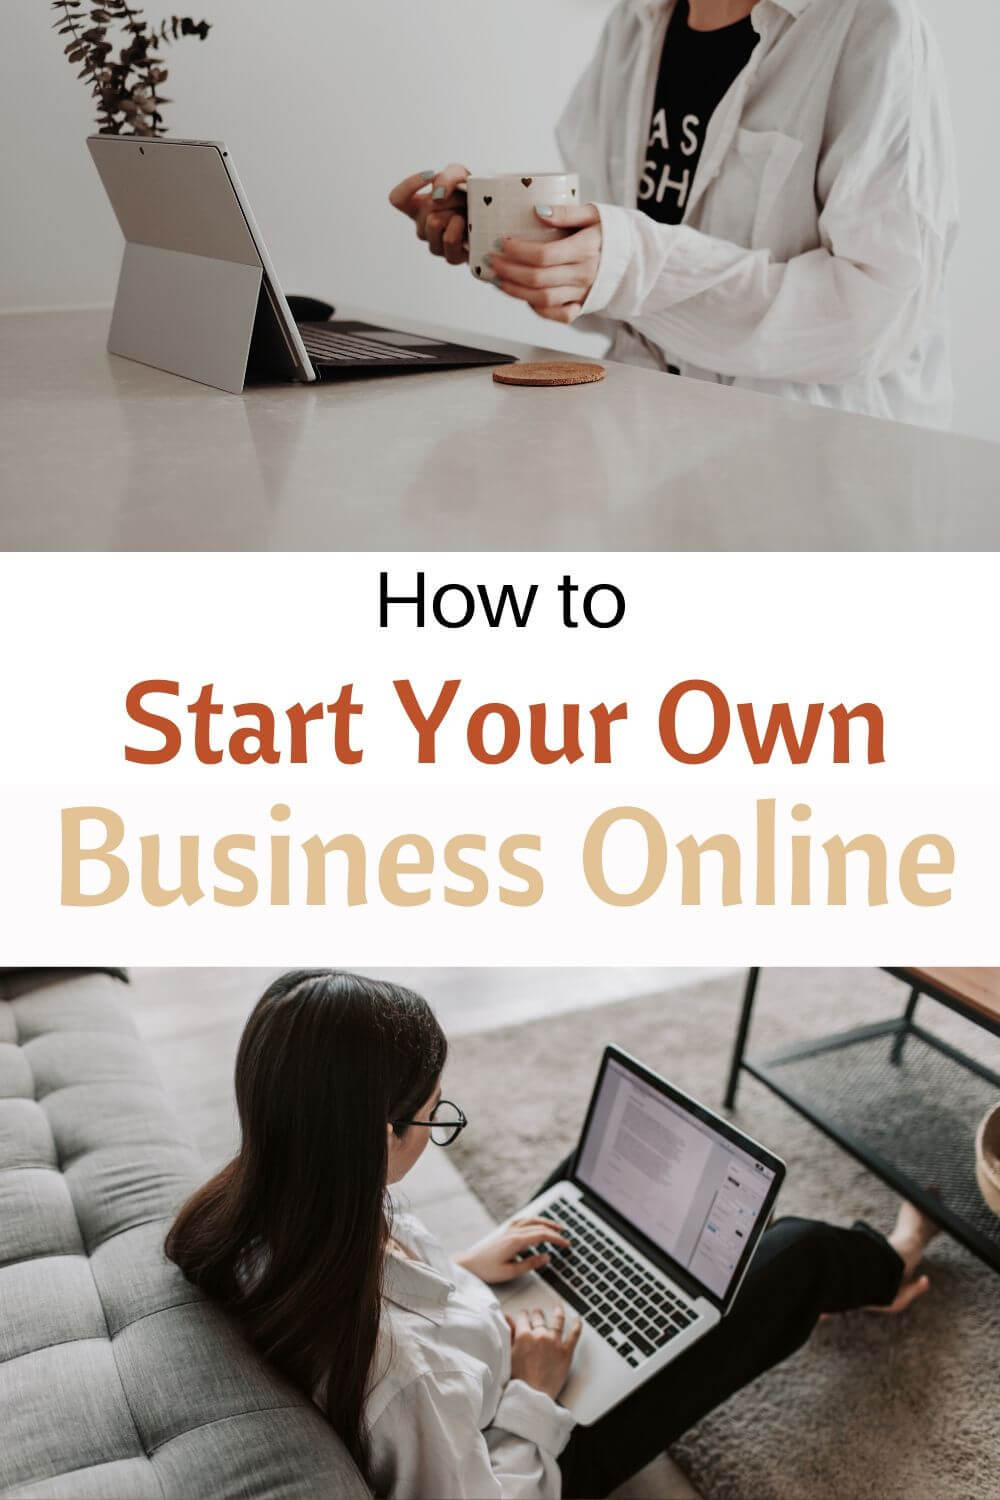 How to Start You Own Business Online